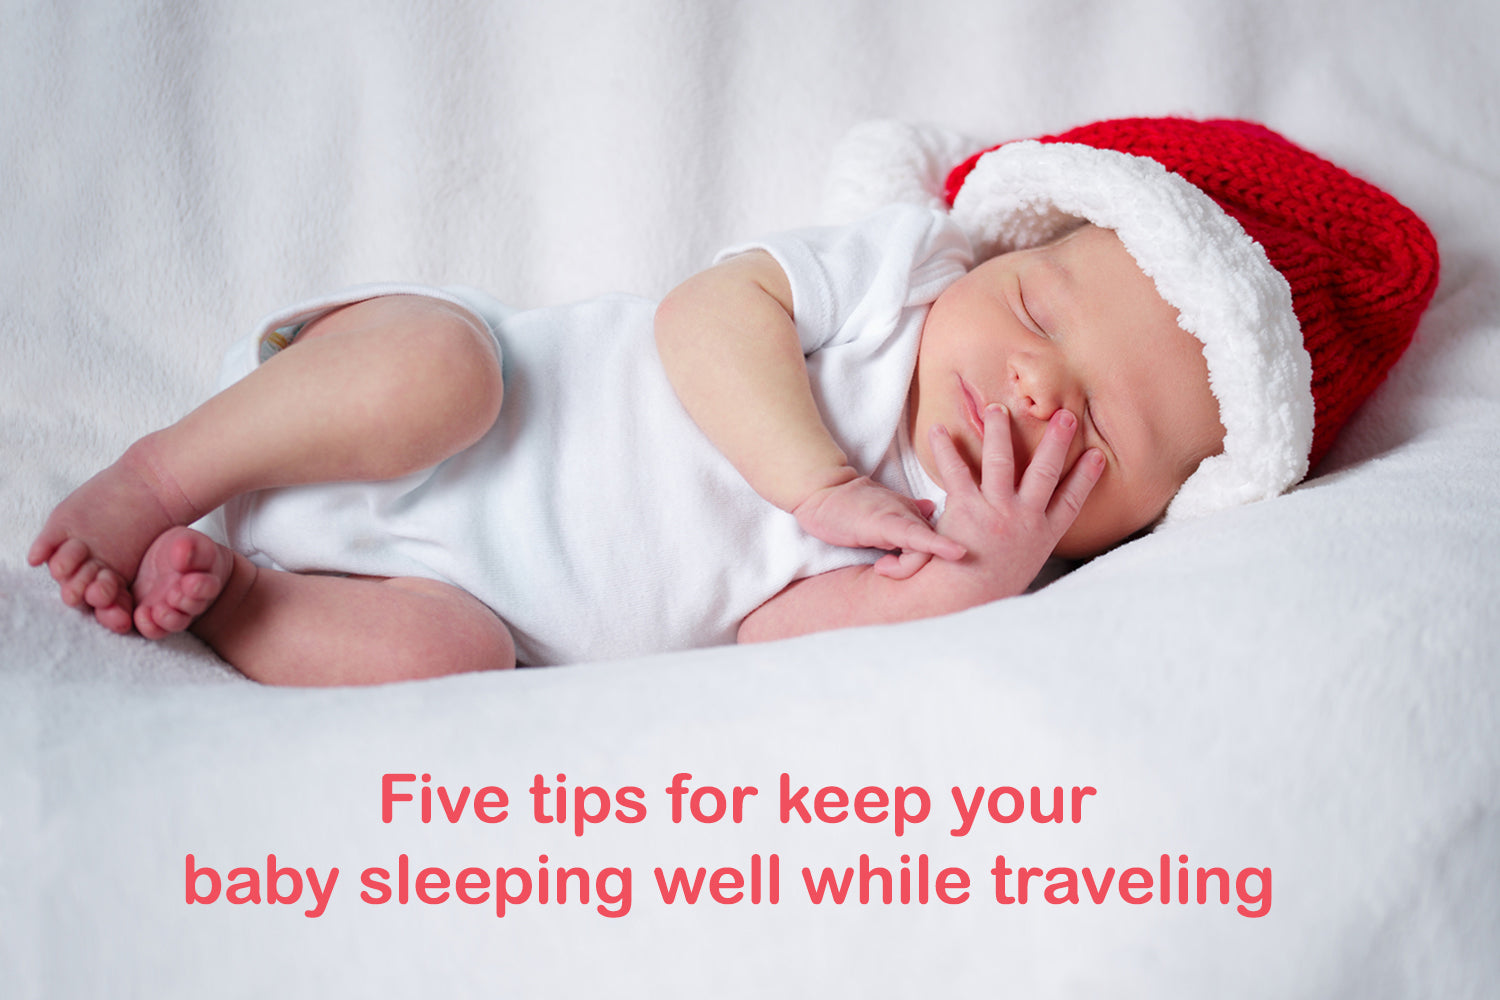 Five tips for maintaining the sleep progress of your little one(s) during upcoming holiday travel